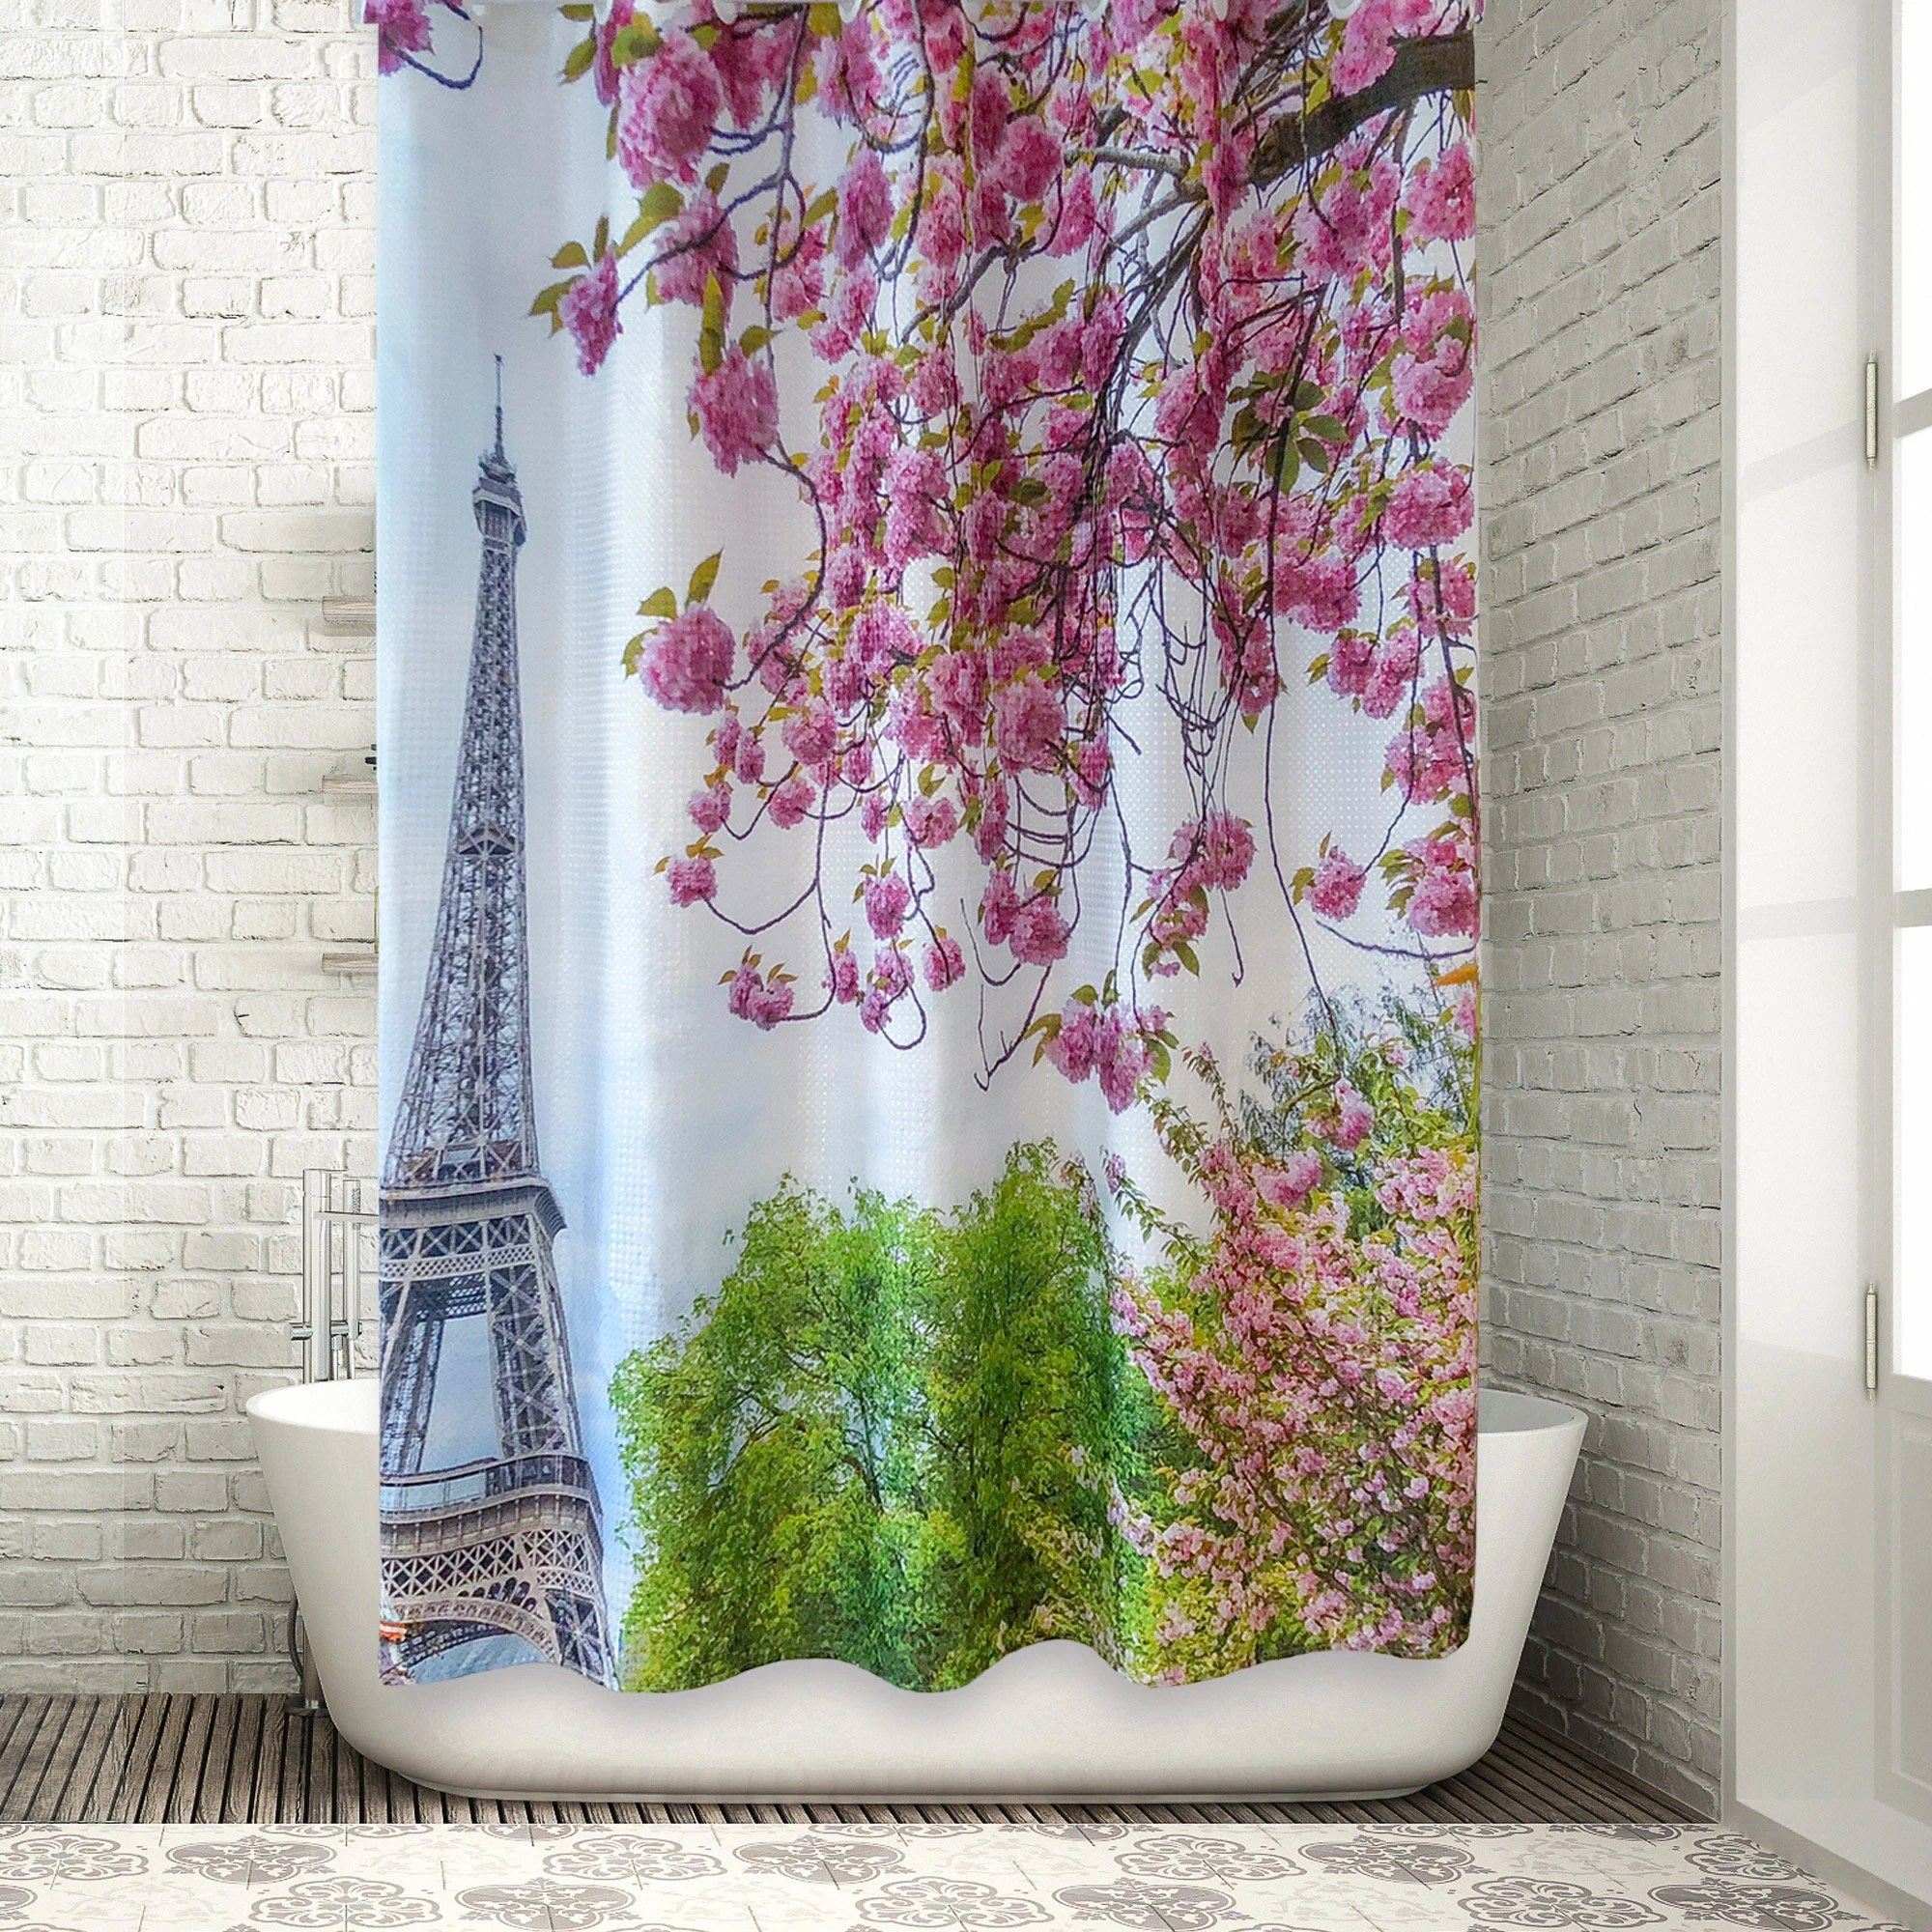 Paris Shower Curtain Eiffel Tower Cherry Blossoms 100 Polyester Waffle Fabric Waterproof Mildew Resistant 72 X 72 Inches